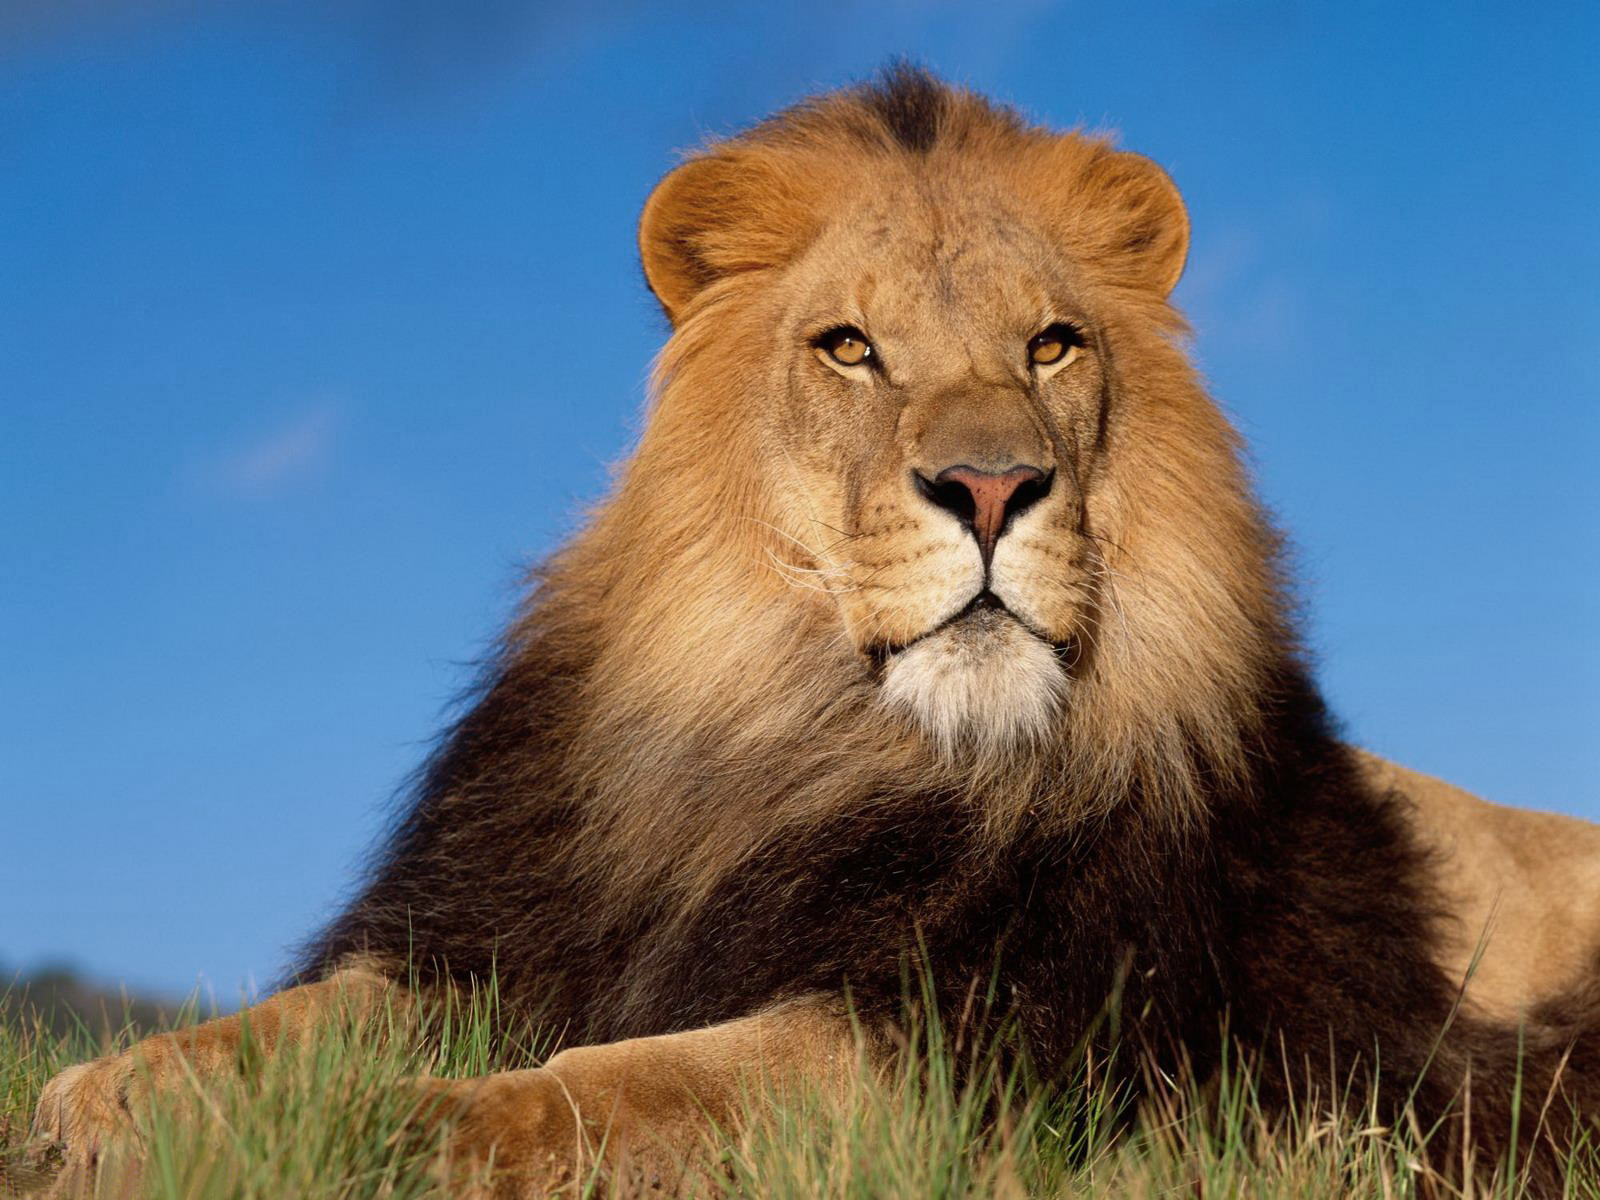 HD Lion Pictures Lions Wallpapers - HD Animal Wallpapers